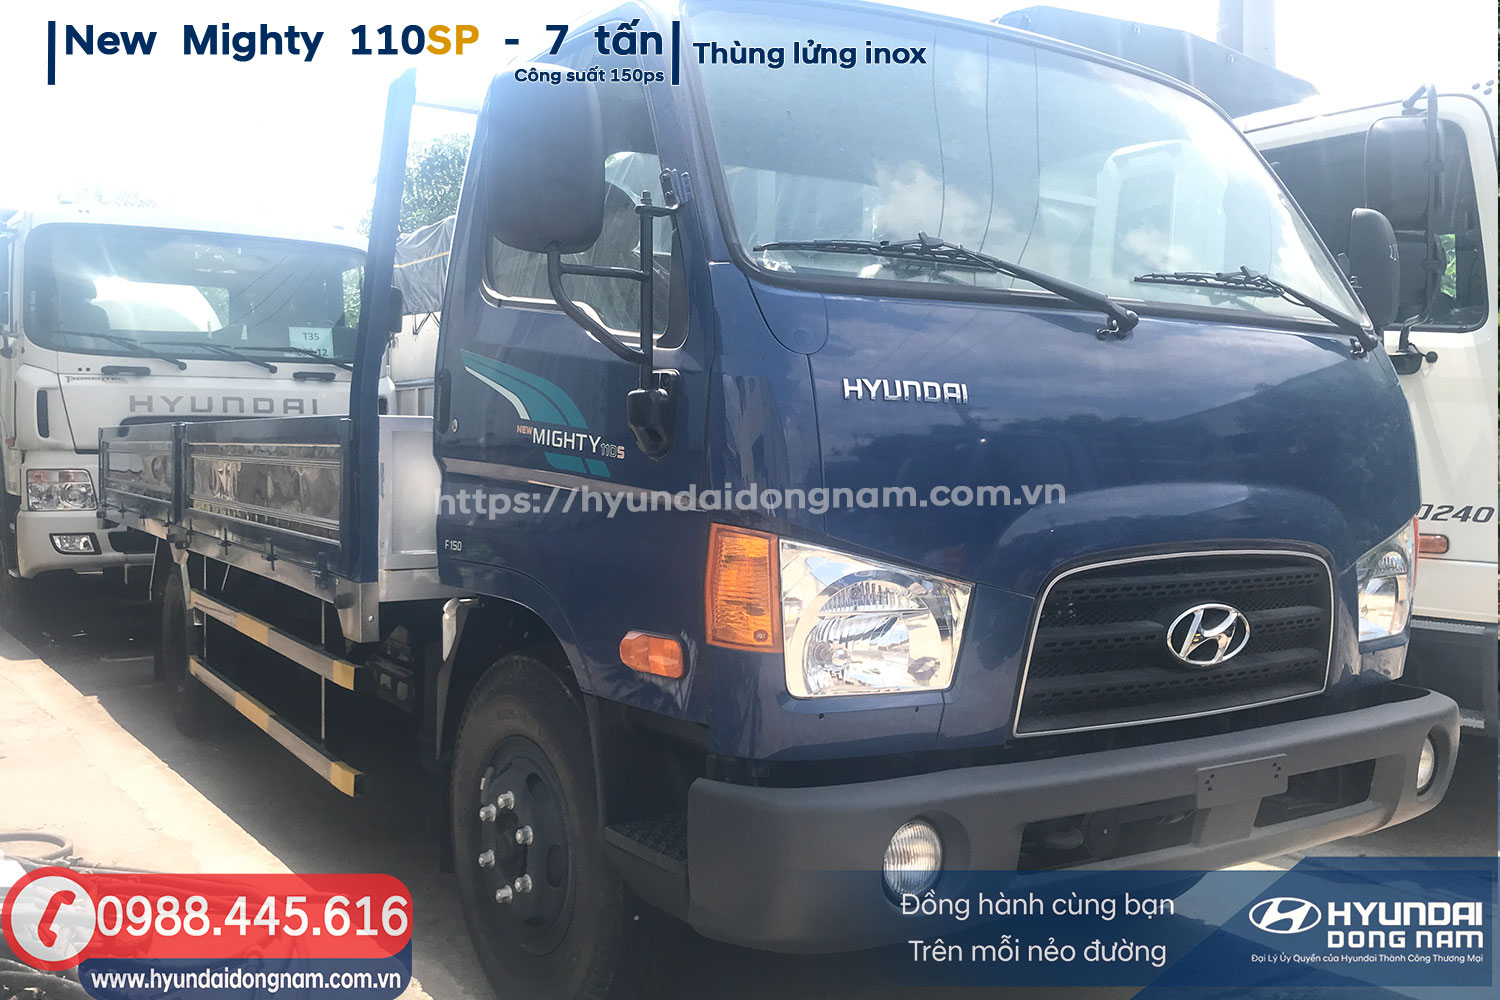 New Mighty 110SP / 110S Thùng Lửng